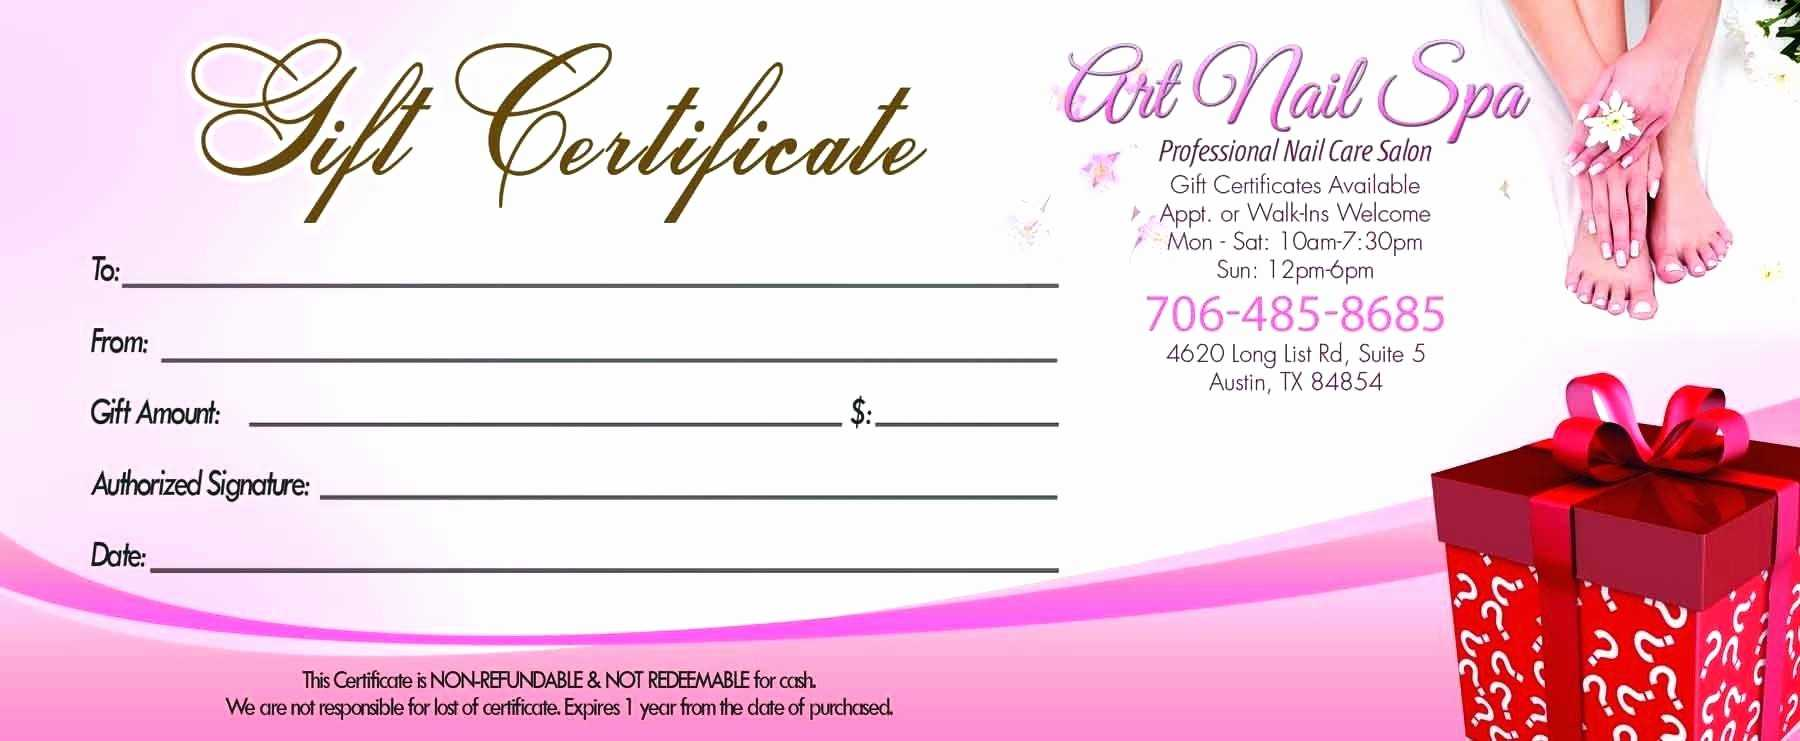 001 Salon Gift Certificate Templates Free Printable Hair Within Nail Gift Certificate Template Free